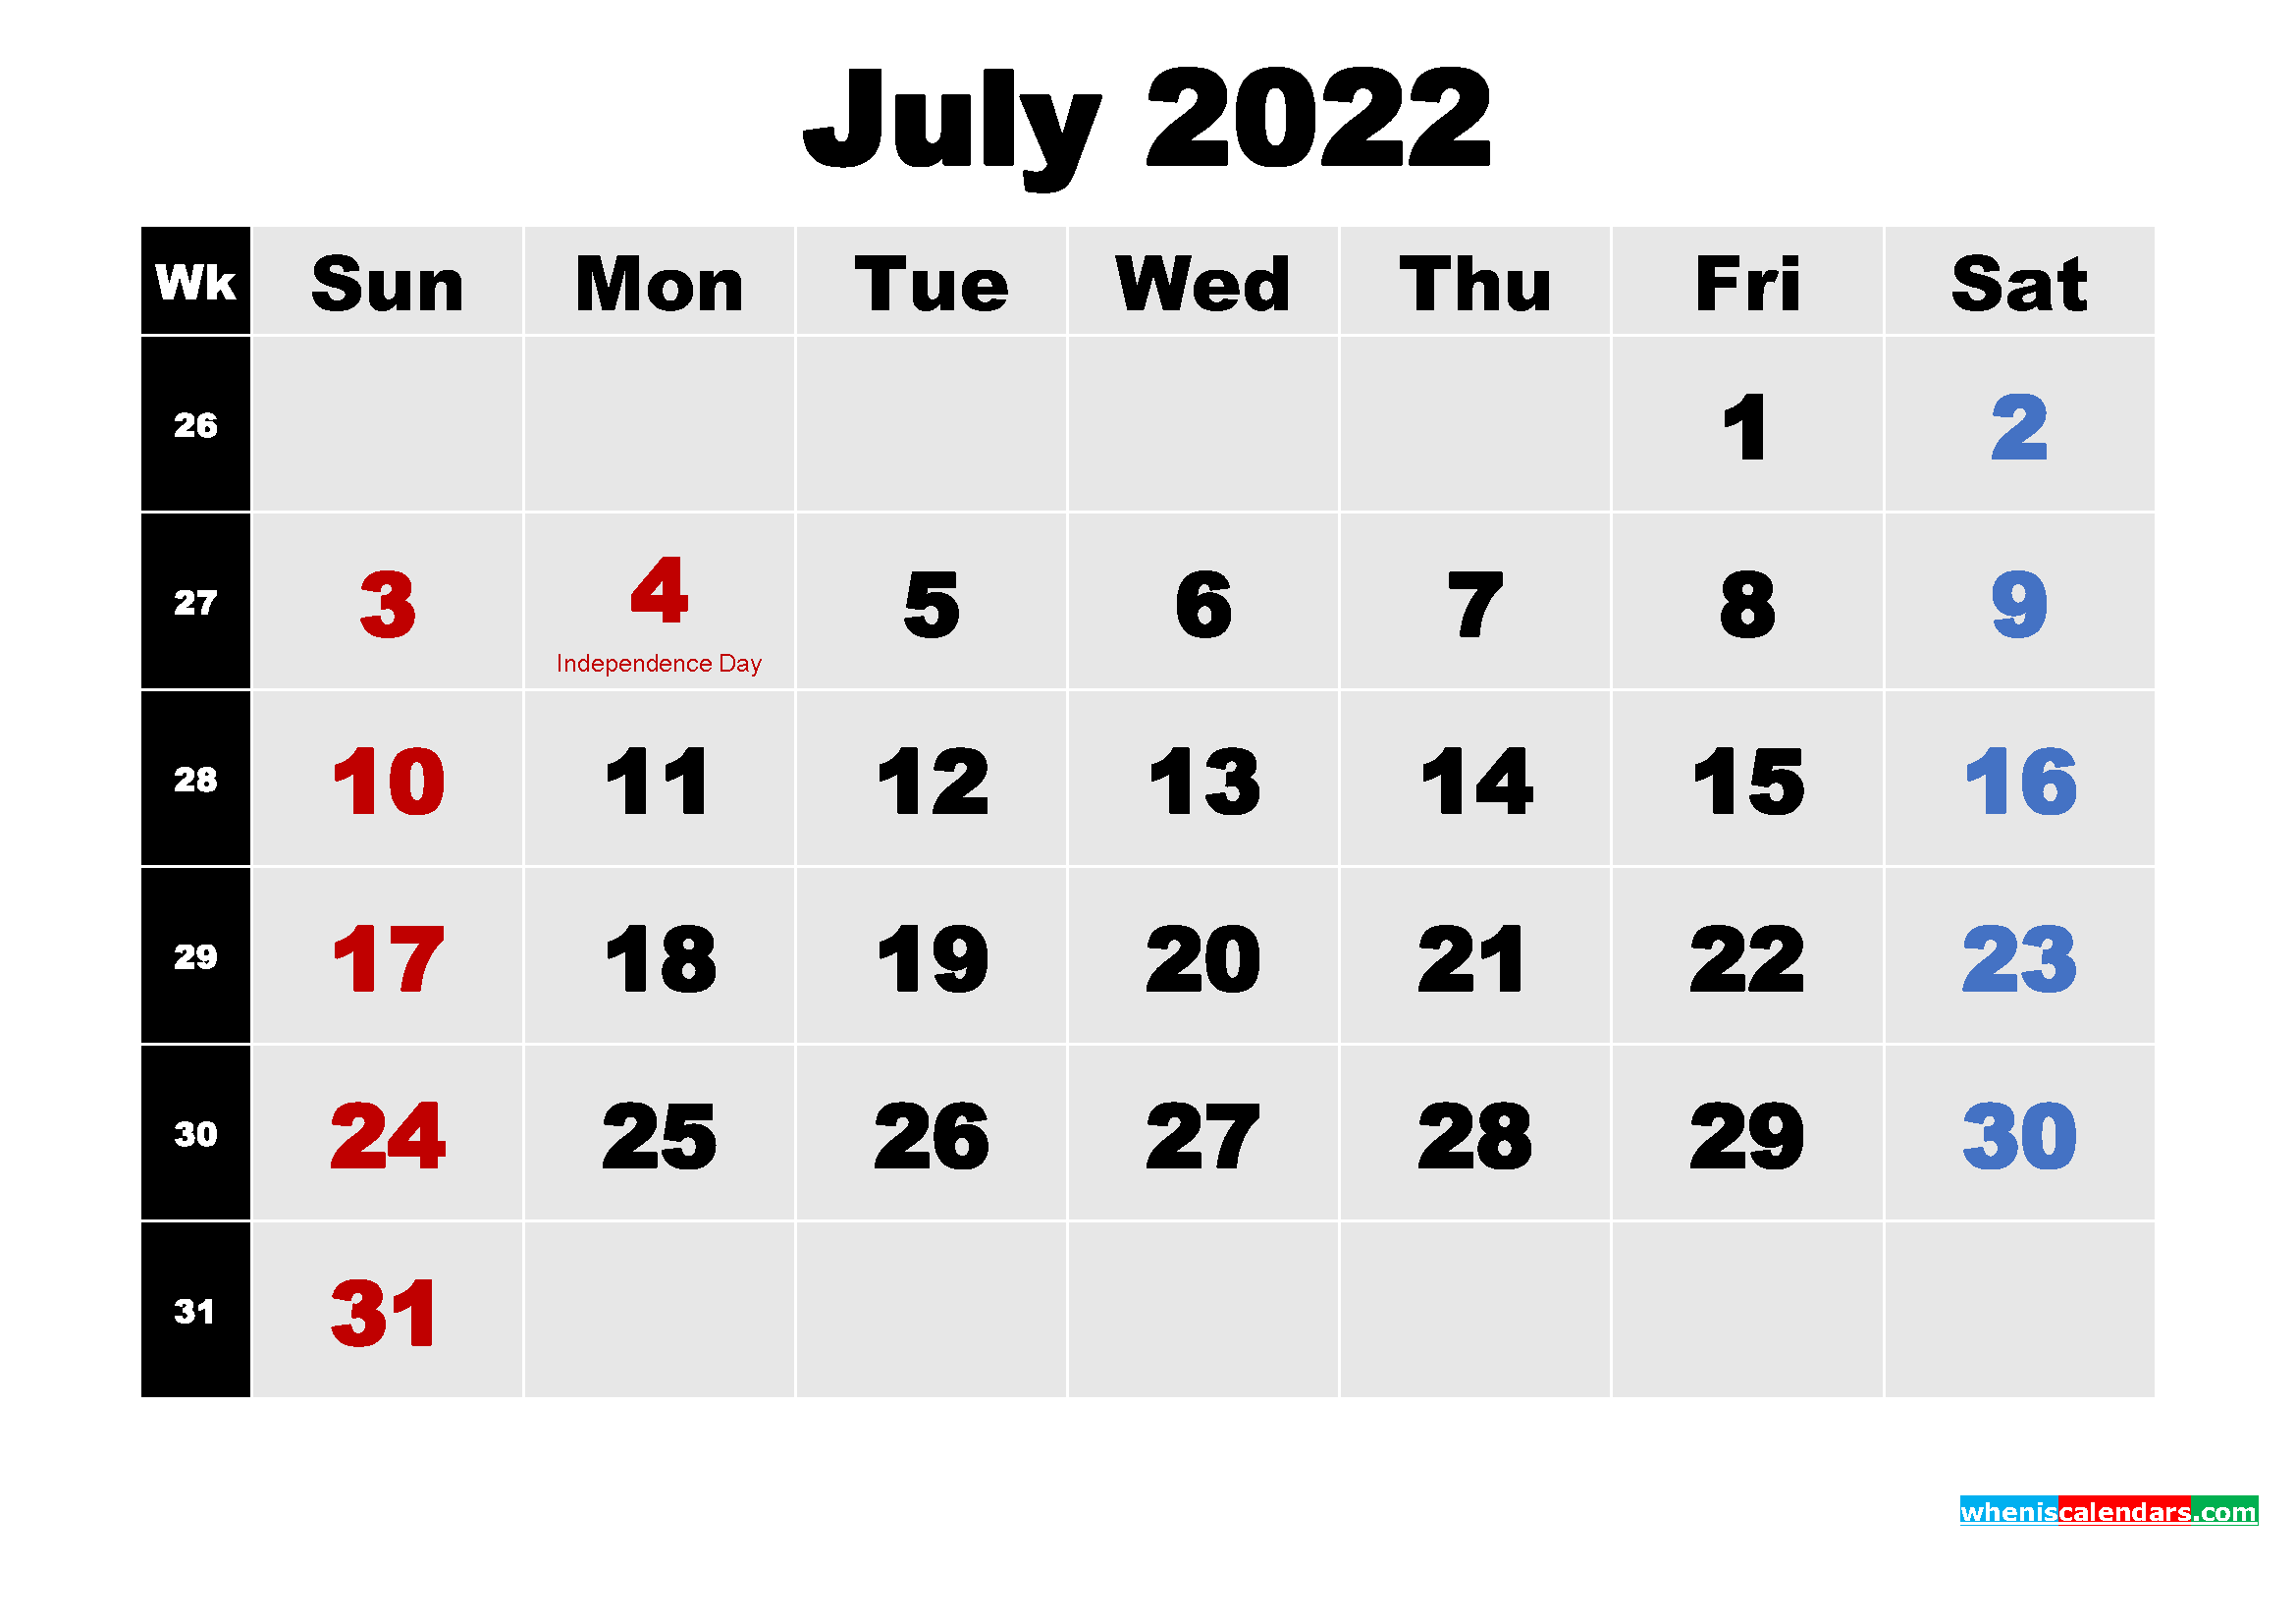 July 2022 Calendar with Holidays Wallpaper